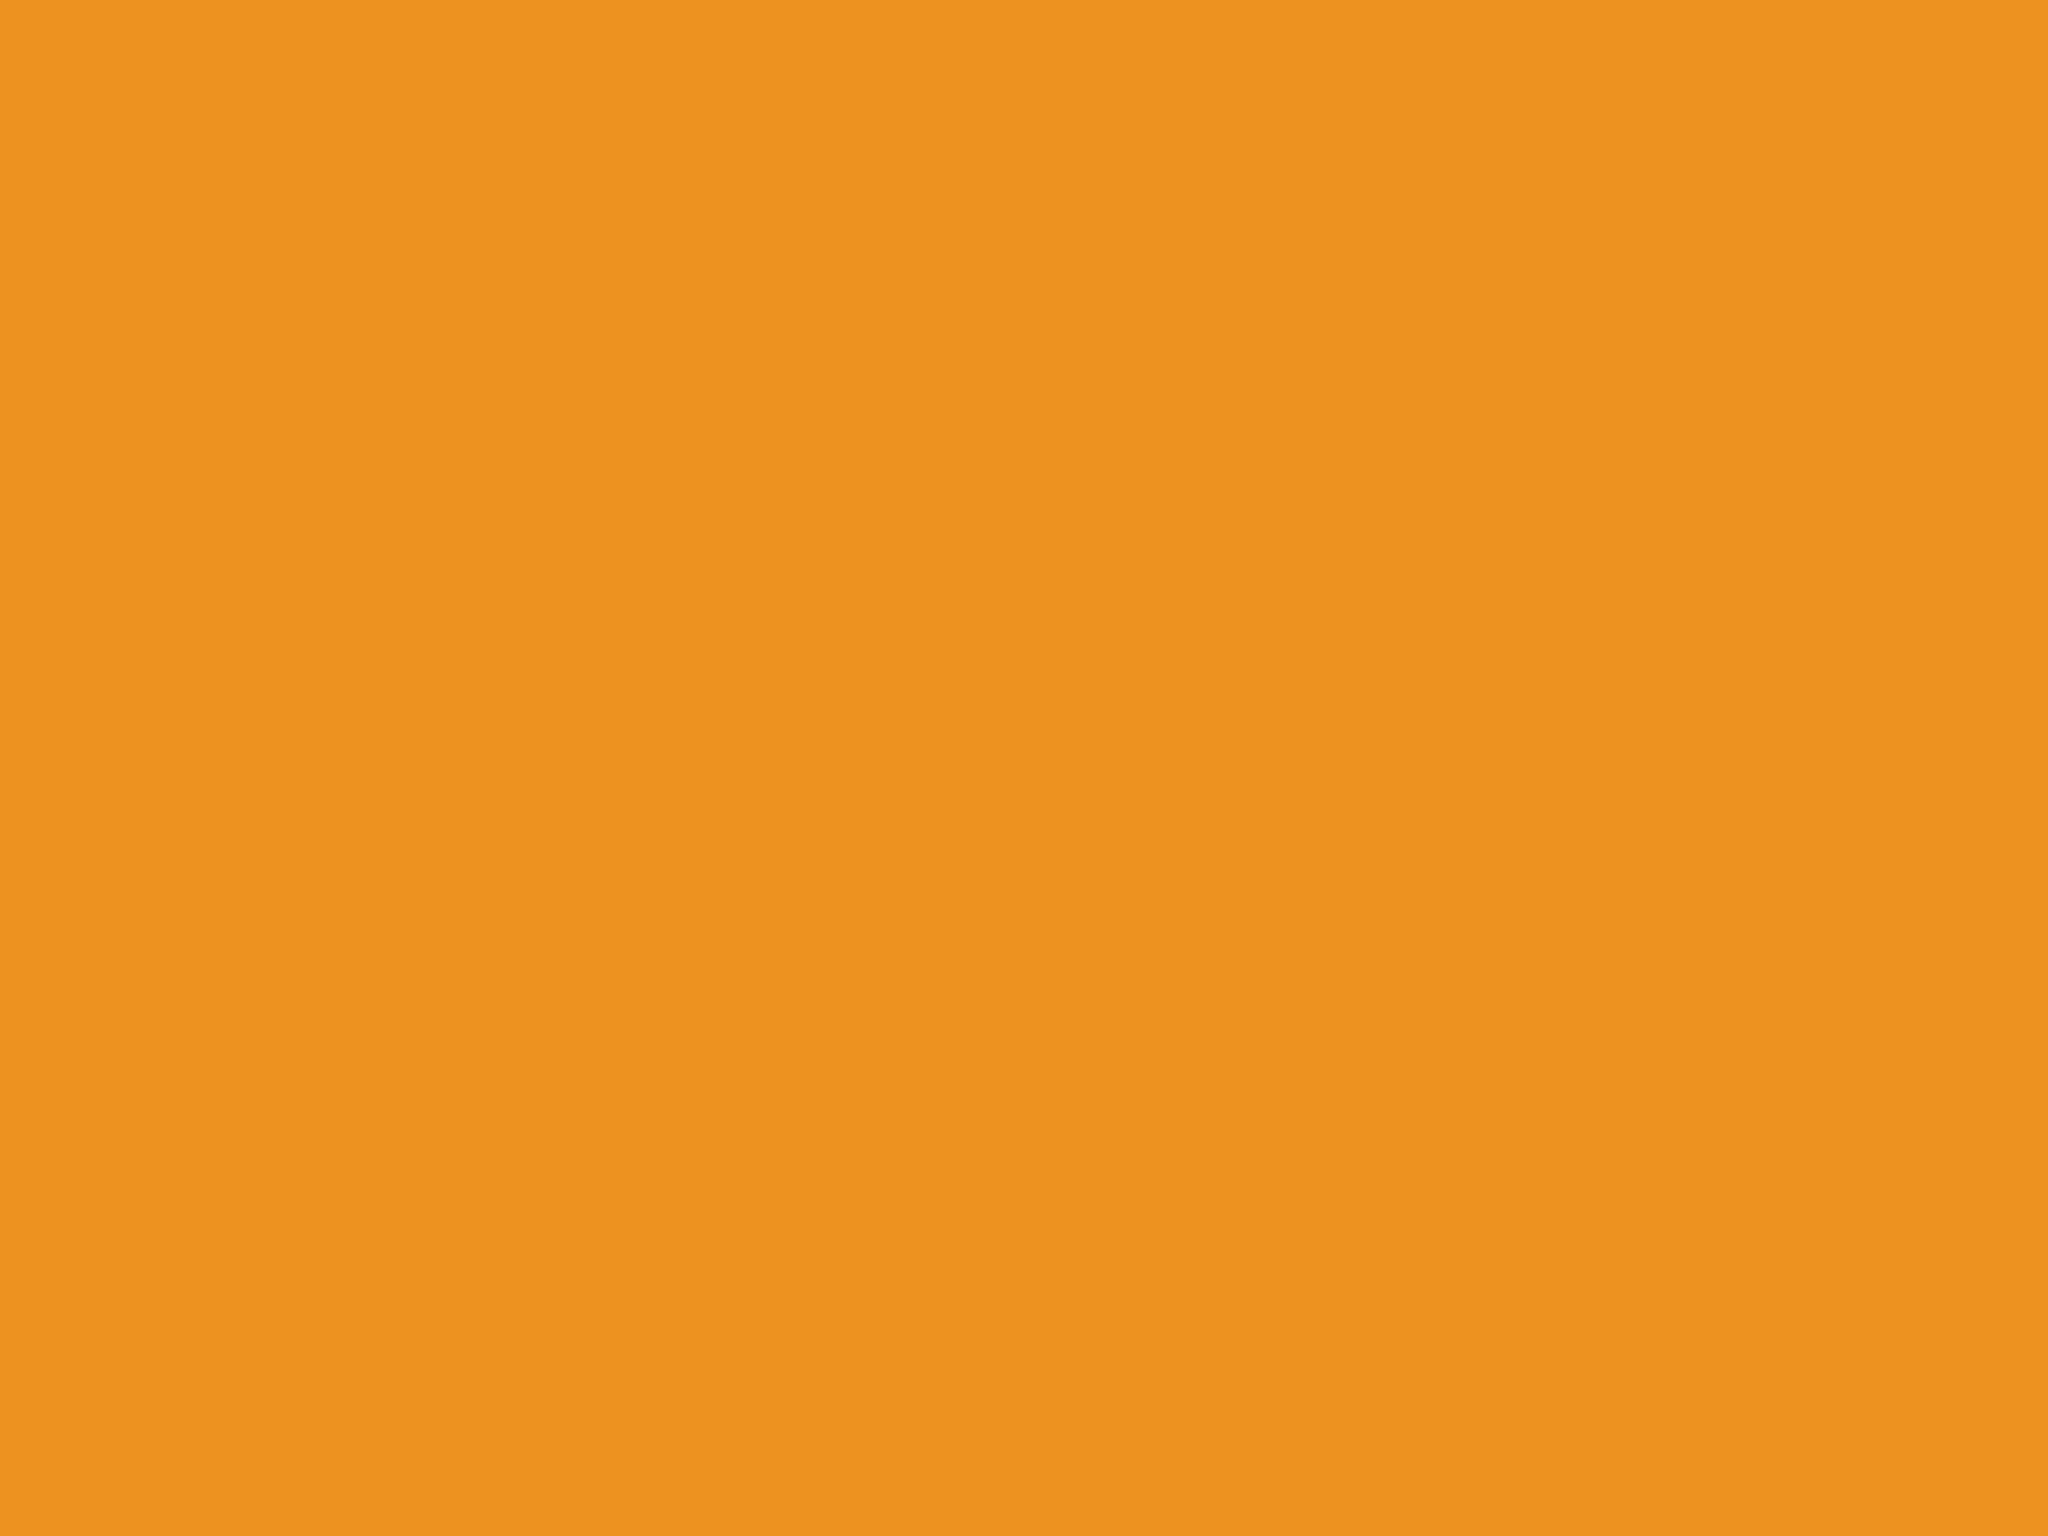 2048x1536 Carrot Orange Solid Color Background